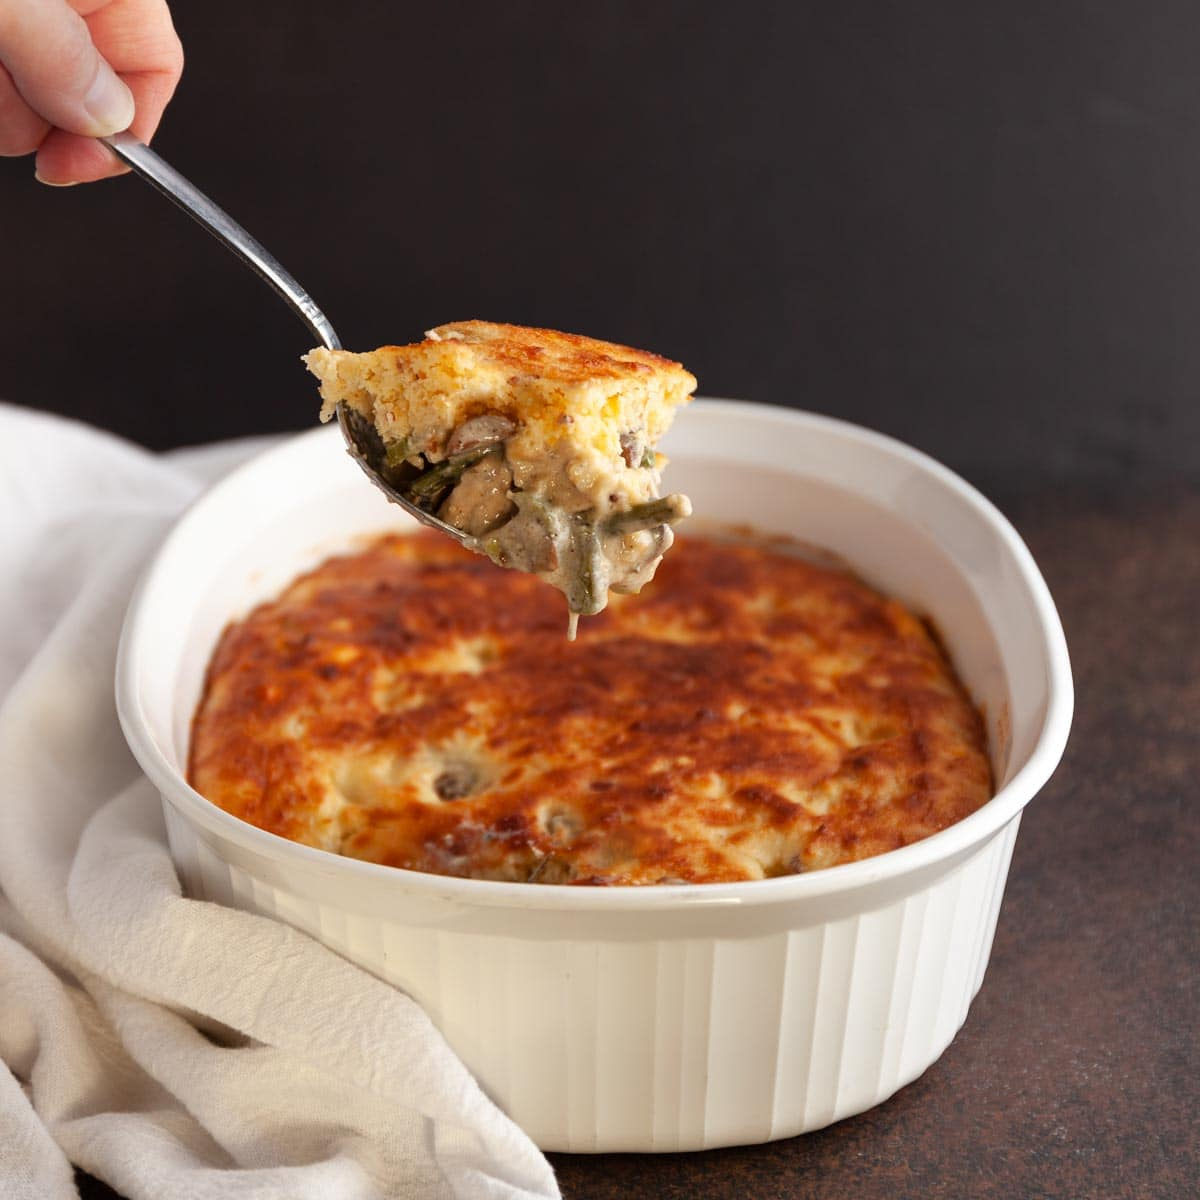 A serving spoon scooping out a square of chicken pot pie.